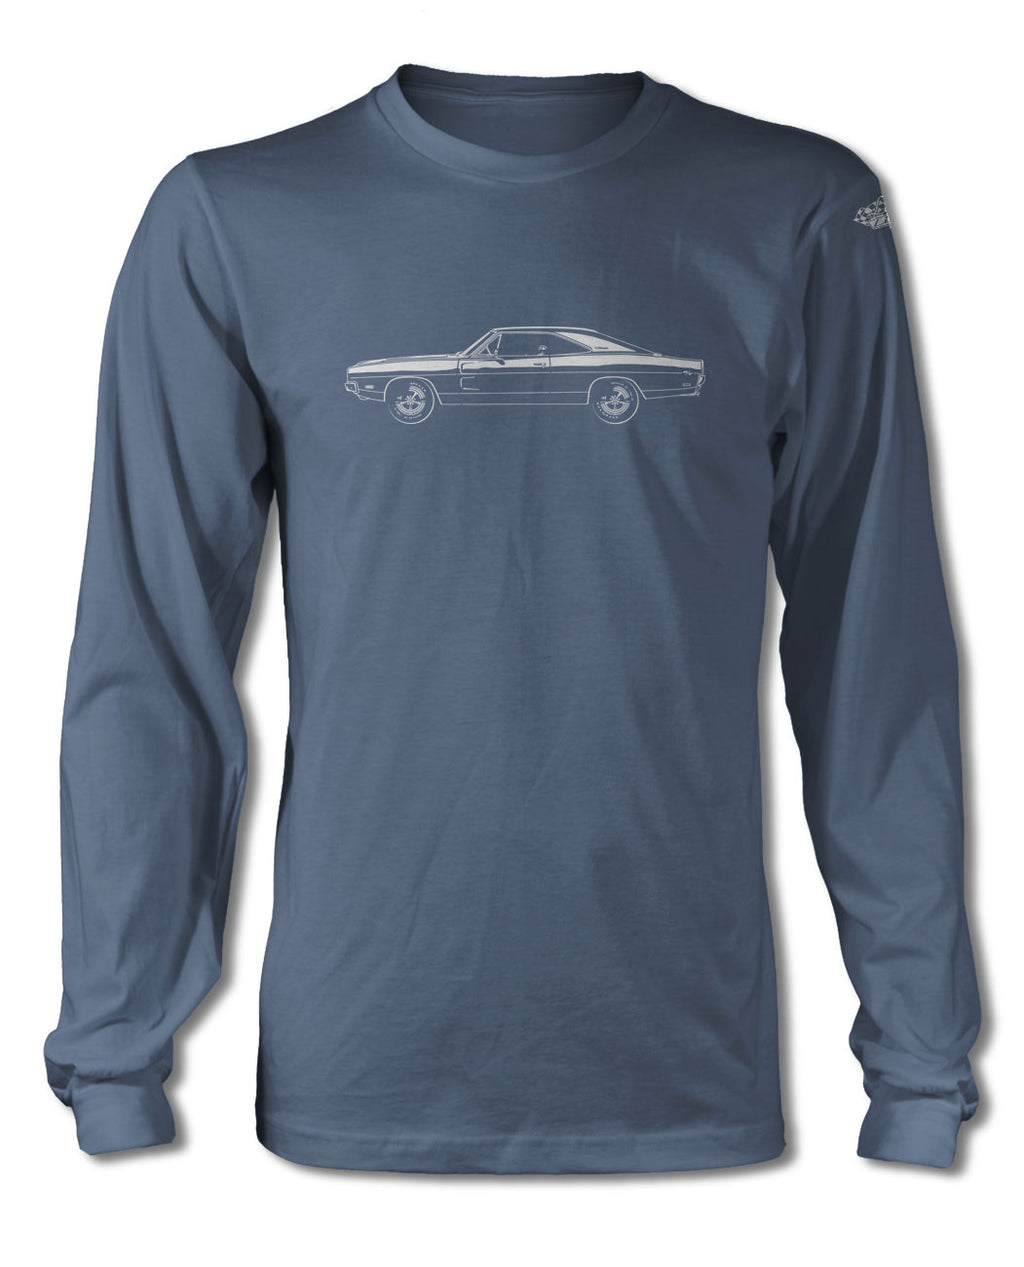 1969 Dodge Charger RT Coupe T-Shirt - Long Sleeves - Side View